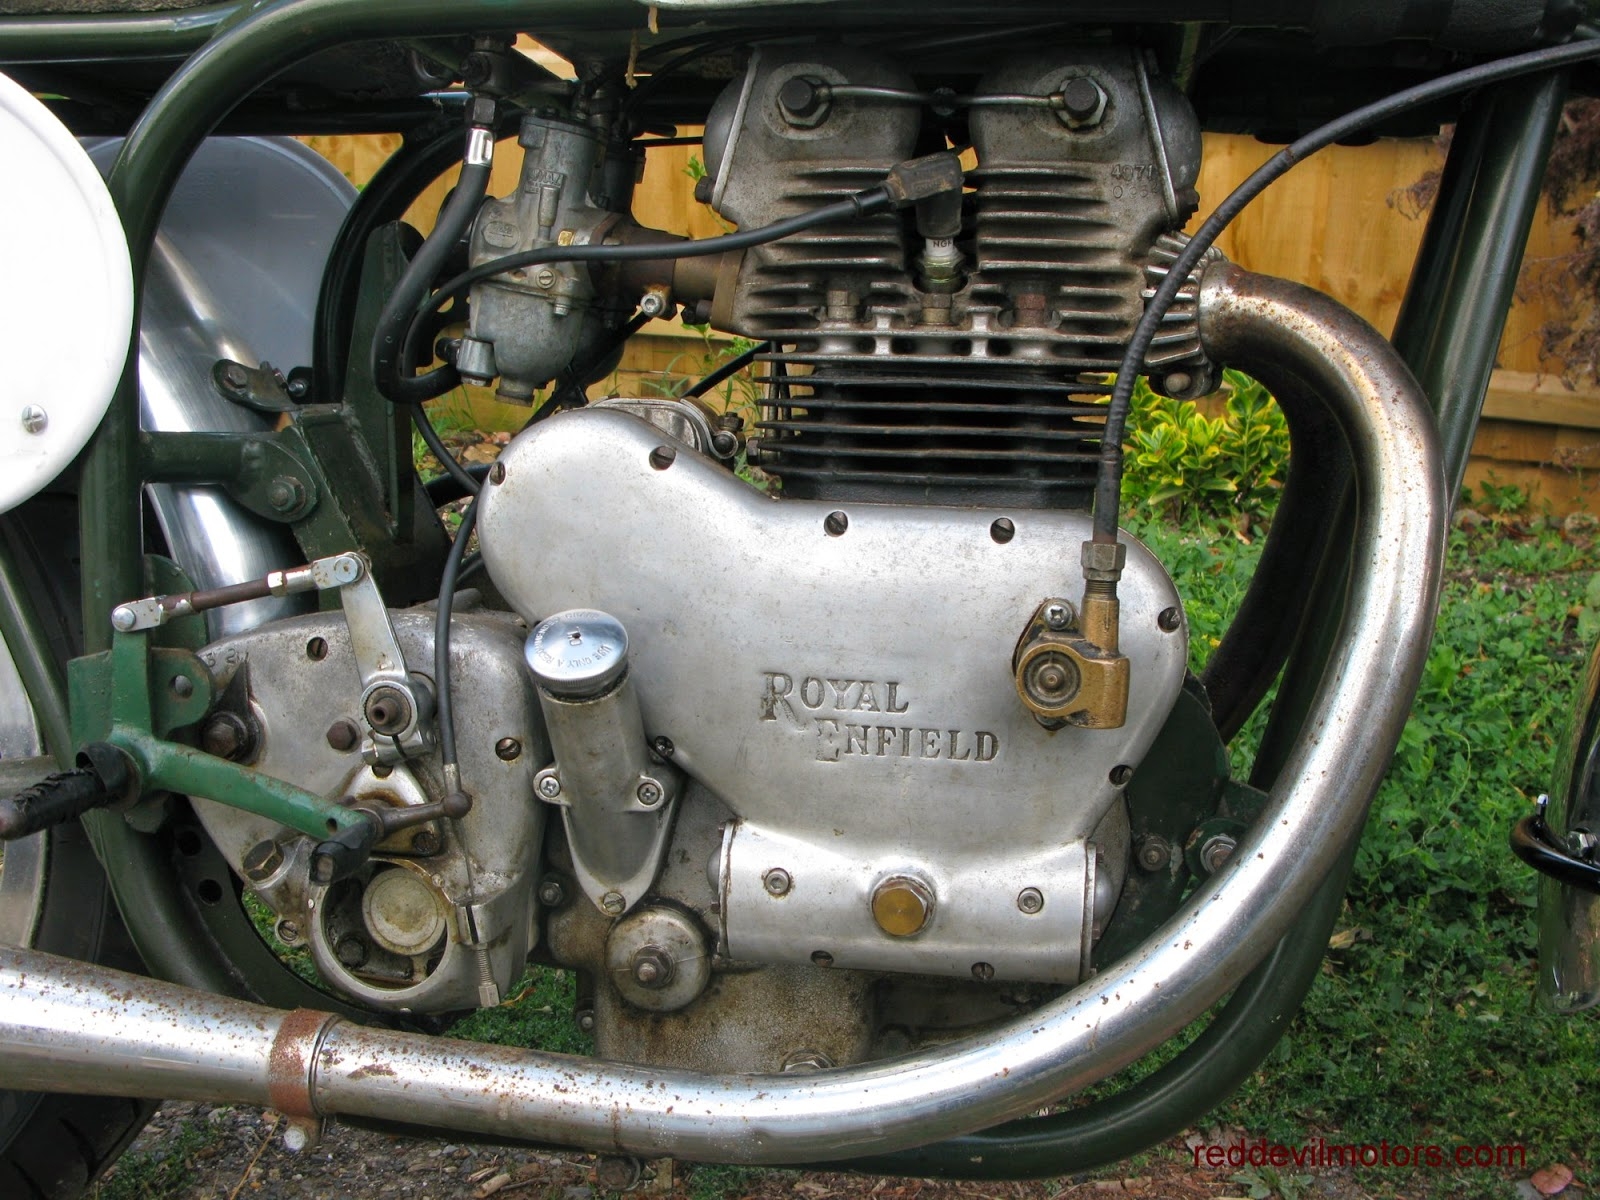 Royal Enfield 500 Twin race bike